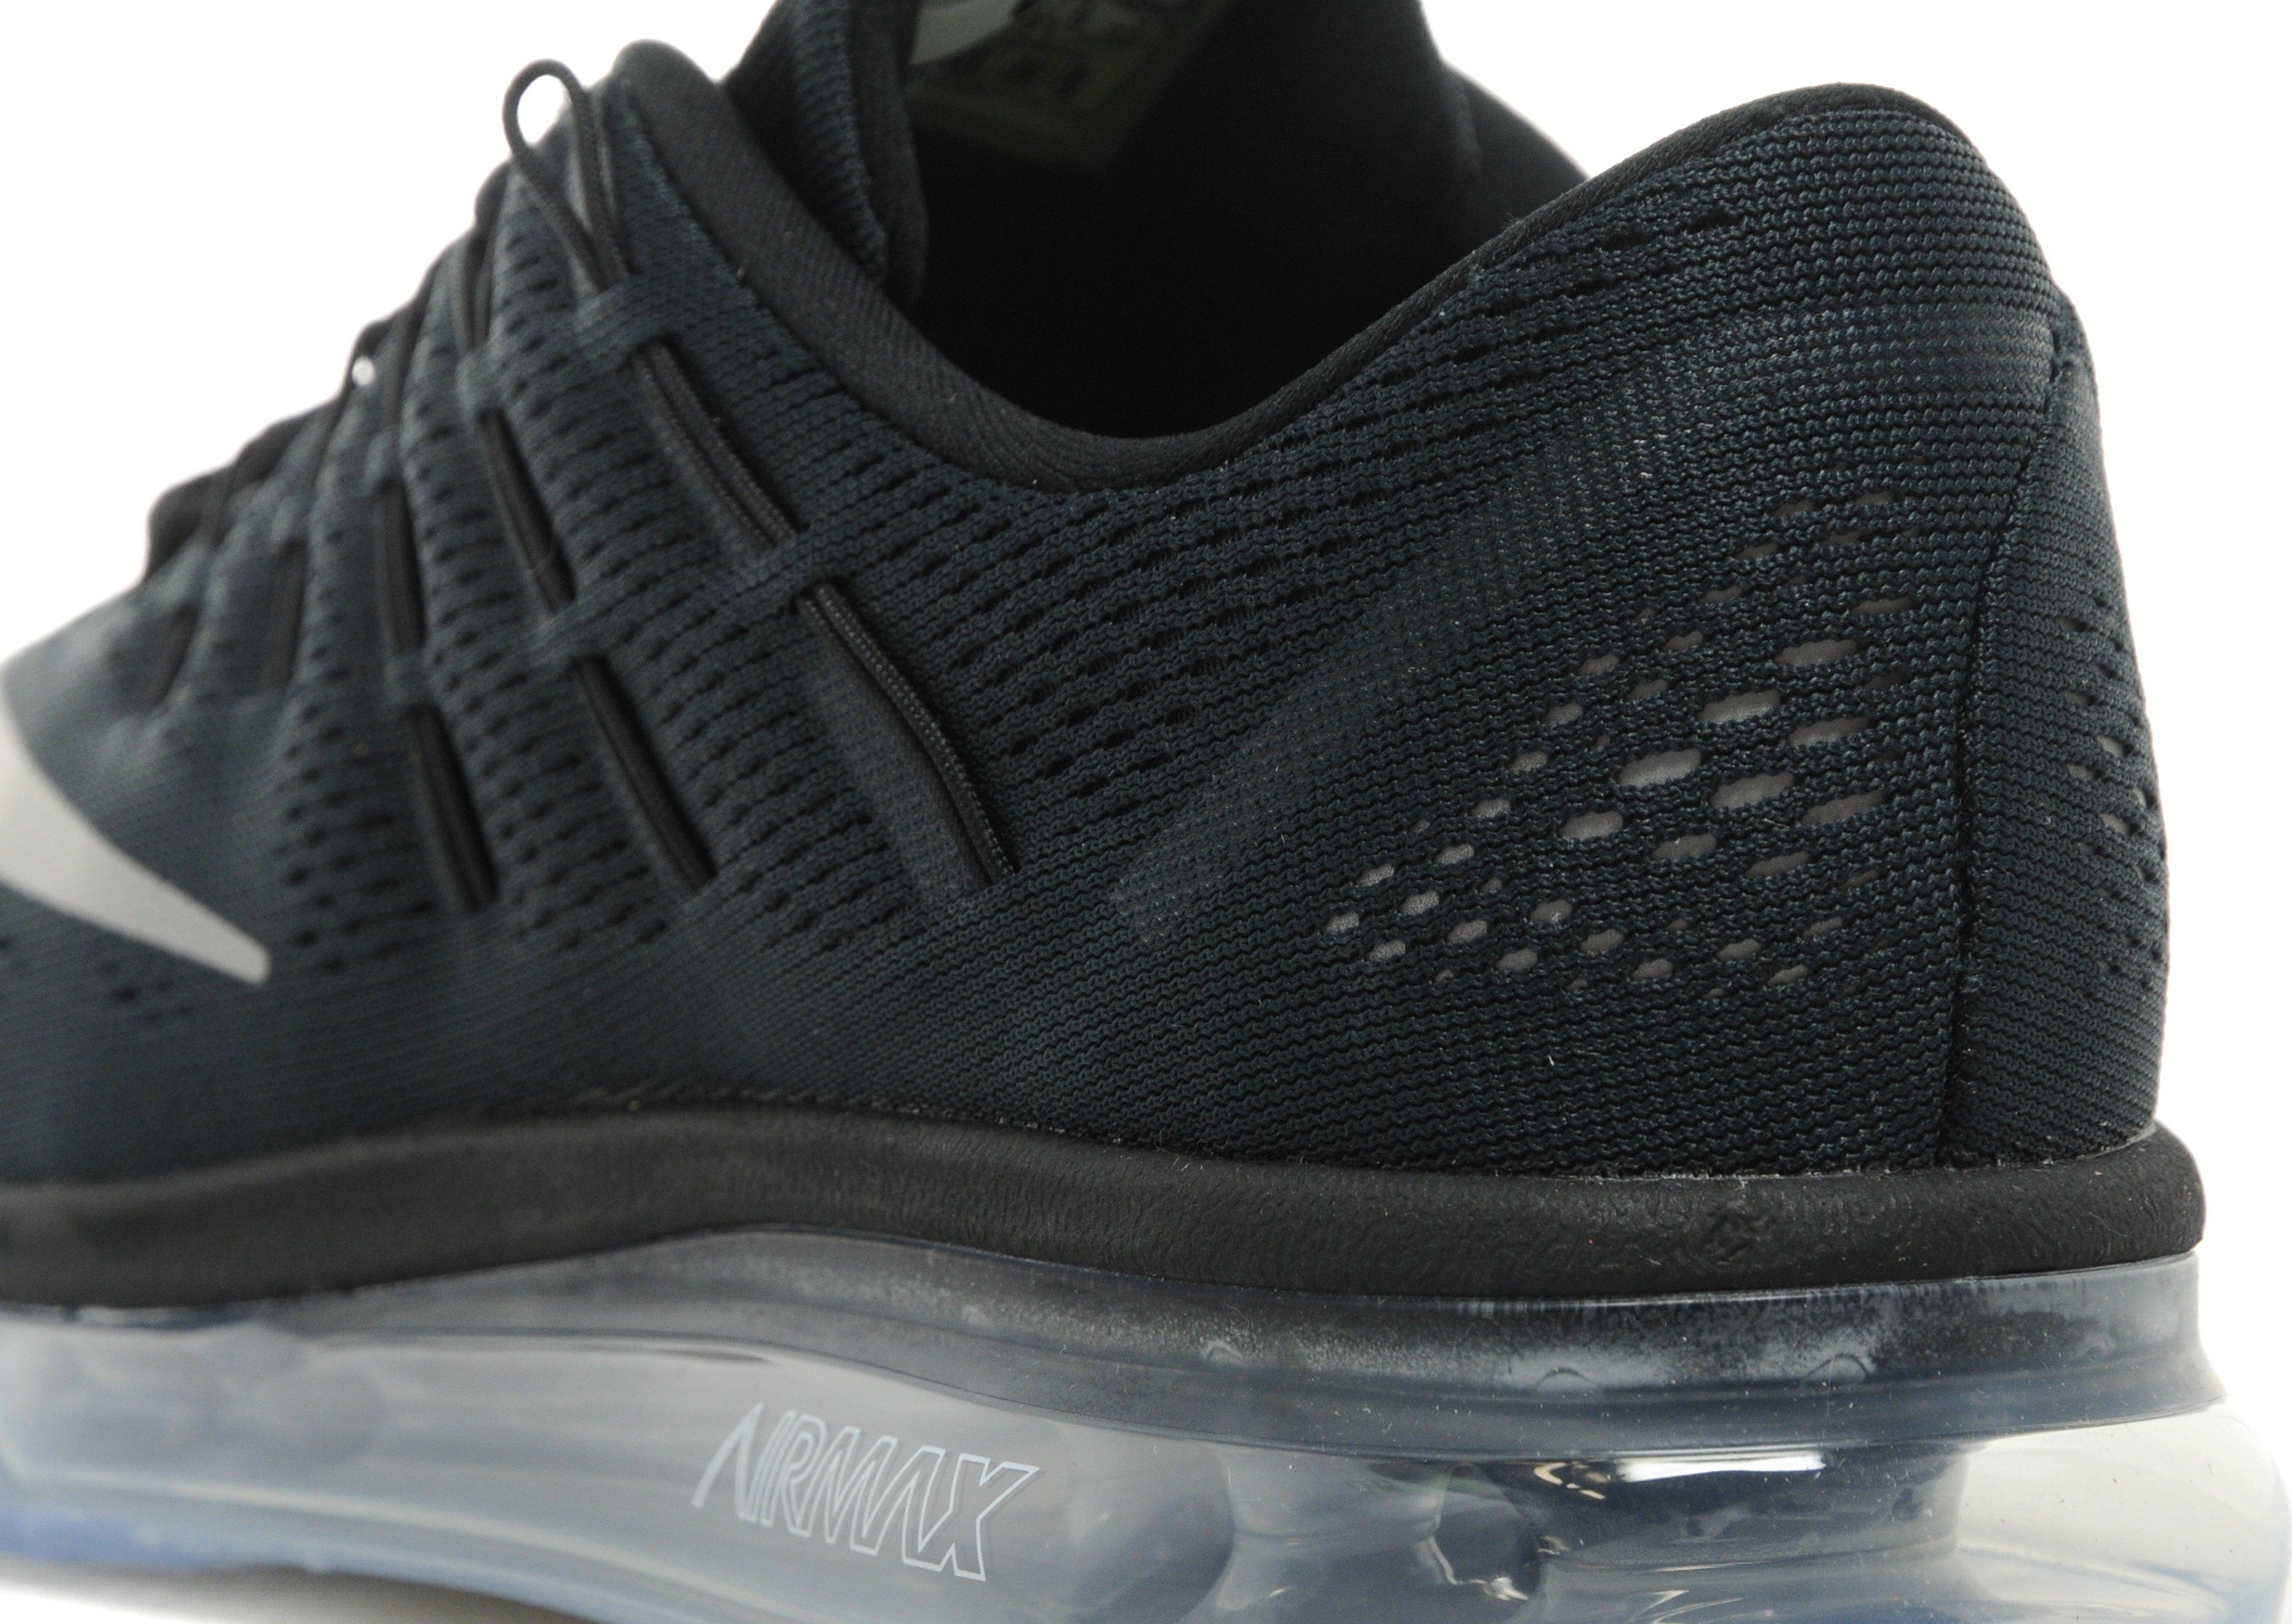 Nike Air Max 2016 Black Womens